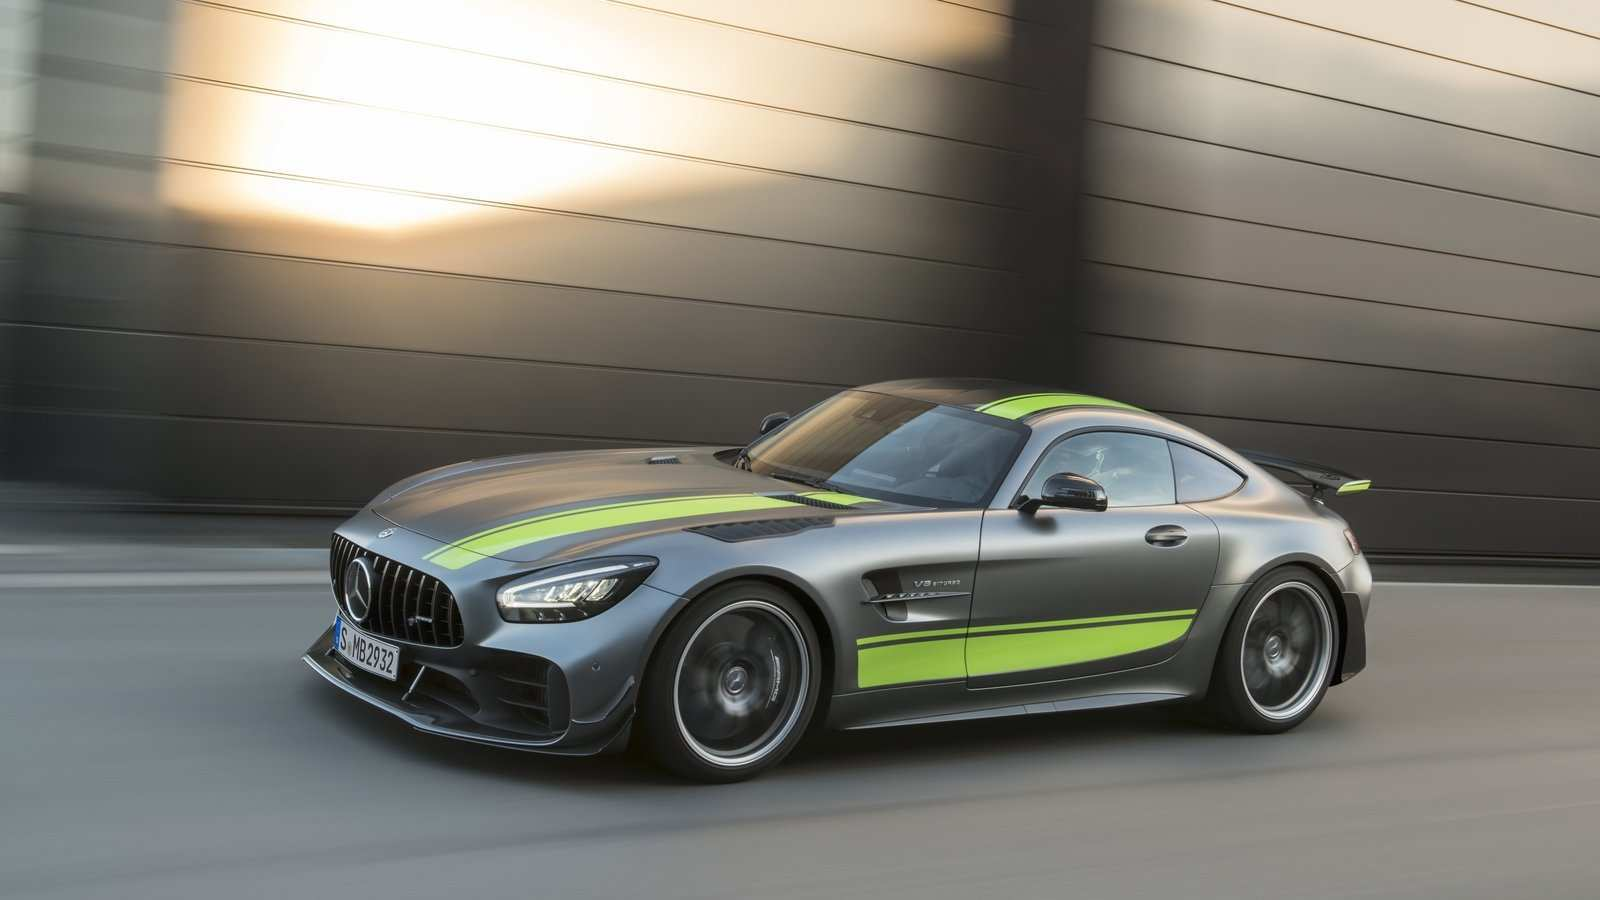 74 All New Mercedes 2020 Amg Gt Specs with Mercedes 2020 Amg Gt